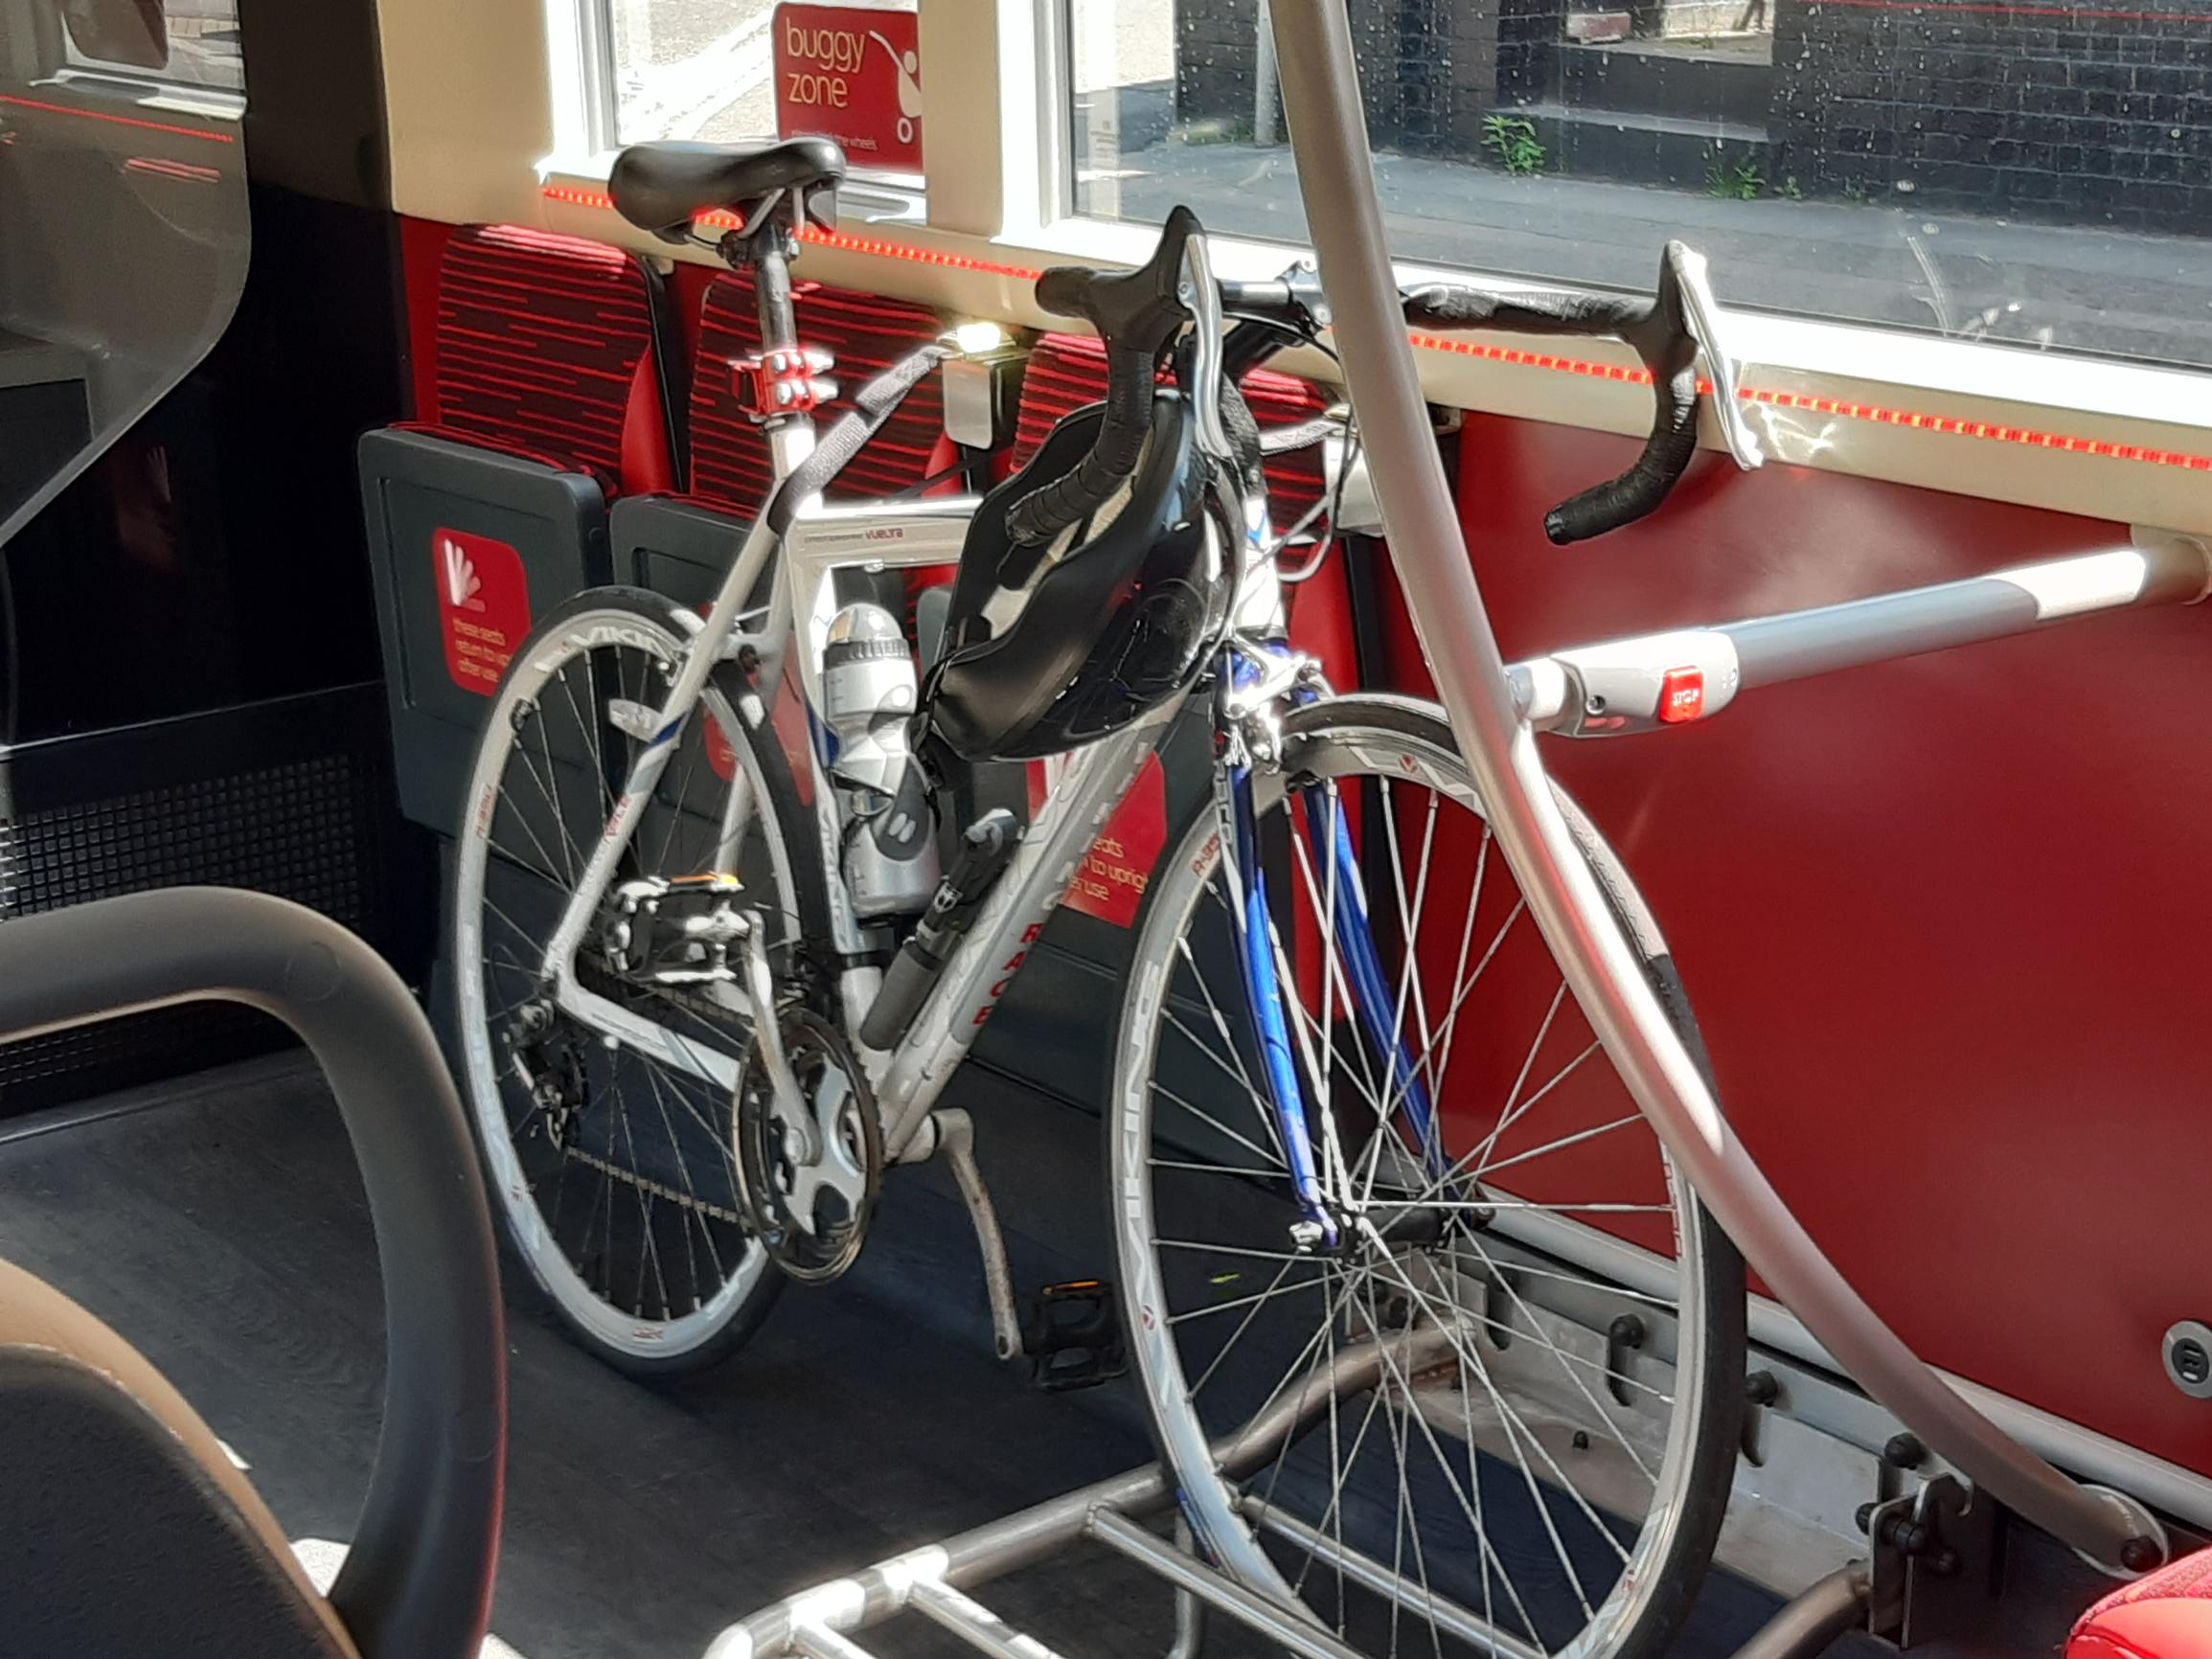 The cycle-friendly buses will be rolled out onto the company's flagship X46 & 45 routes between Hull, Beverley, Market Weighton, Pocklington and York, and between Bridlington, Driffield and York, with travellers able to bring their bike along for free